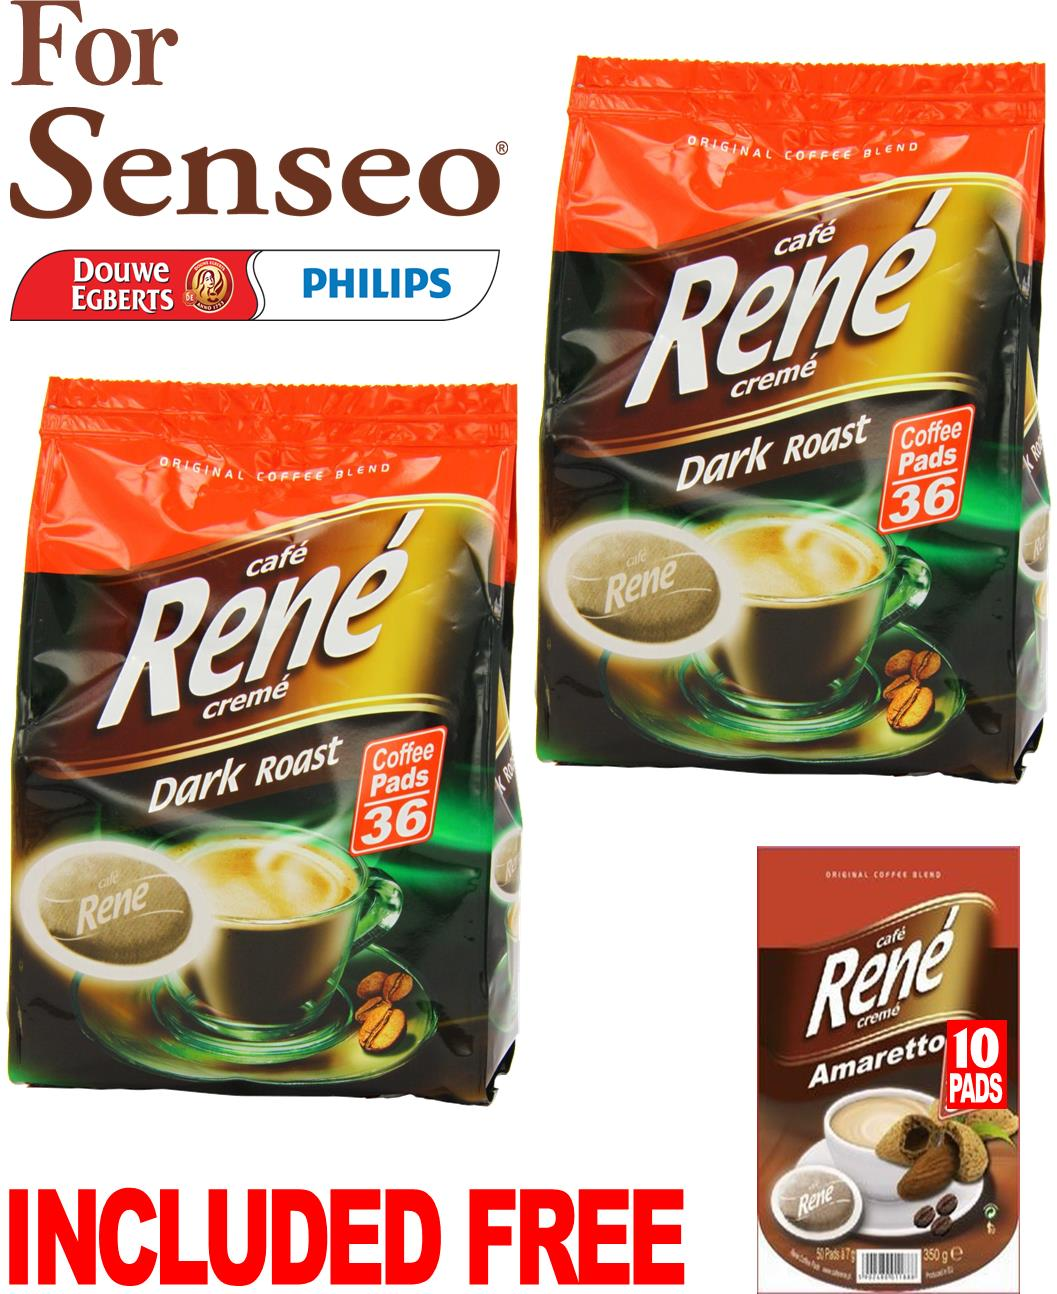 philips senseo 72 x cafe rene crem dark roast coffee pads bags pods caf rene computer star. Black Bedroom Furniture Sets. Home Design Ideas